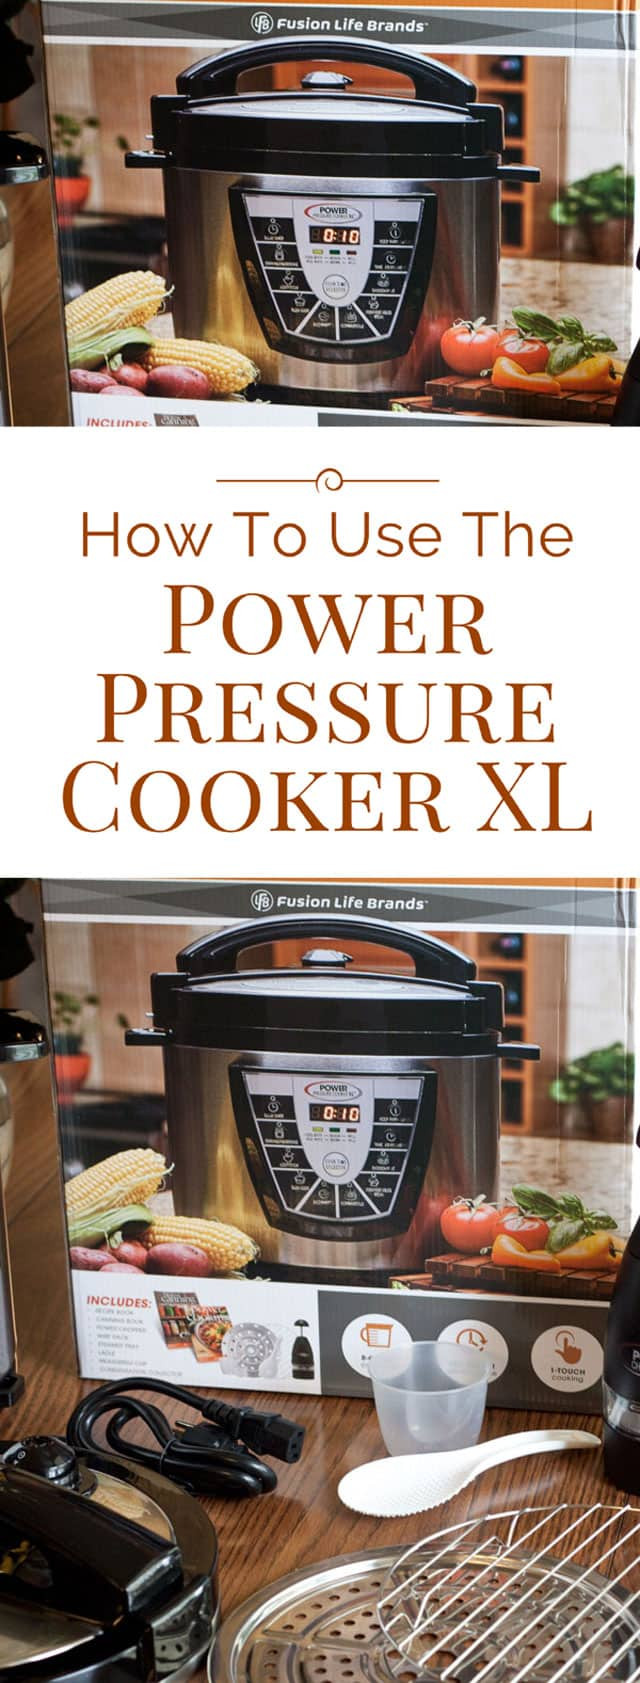 Power Pressure Cooker Xl Fish Recipes  How to Use the Power Pressure Cooker XL Pressure Cooking